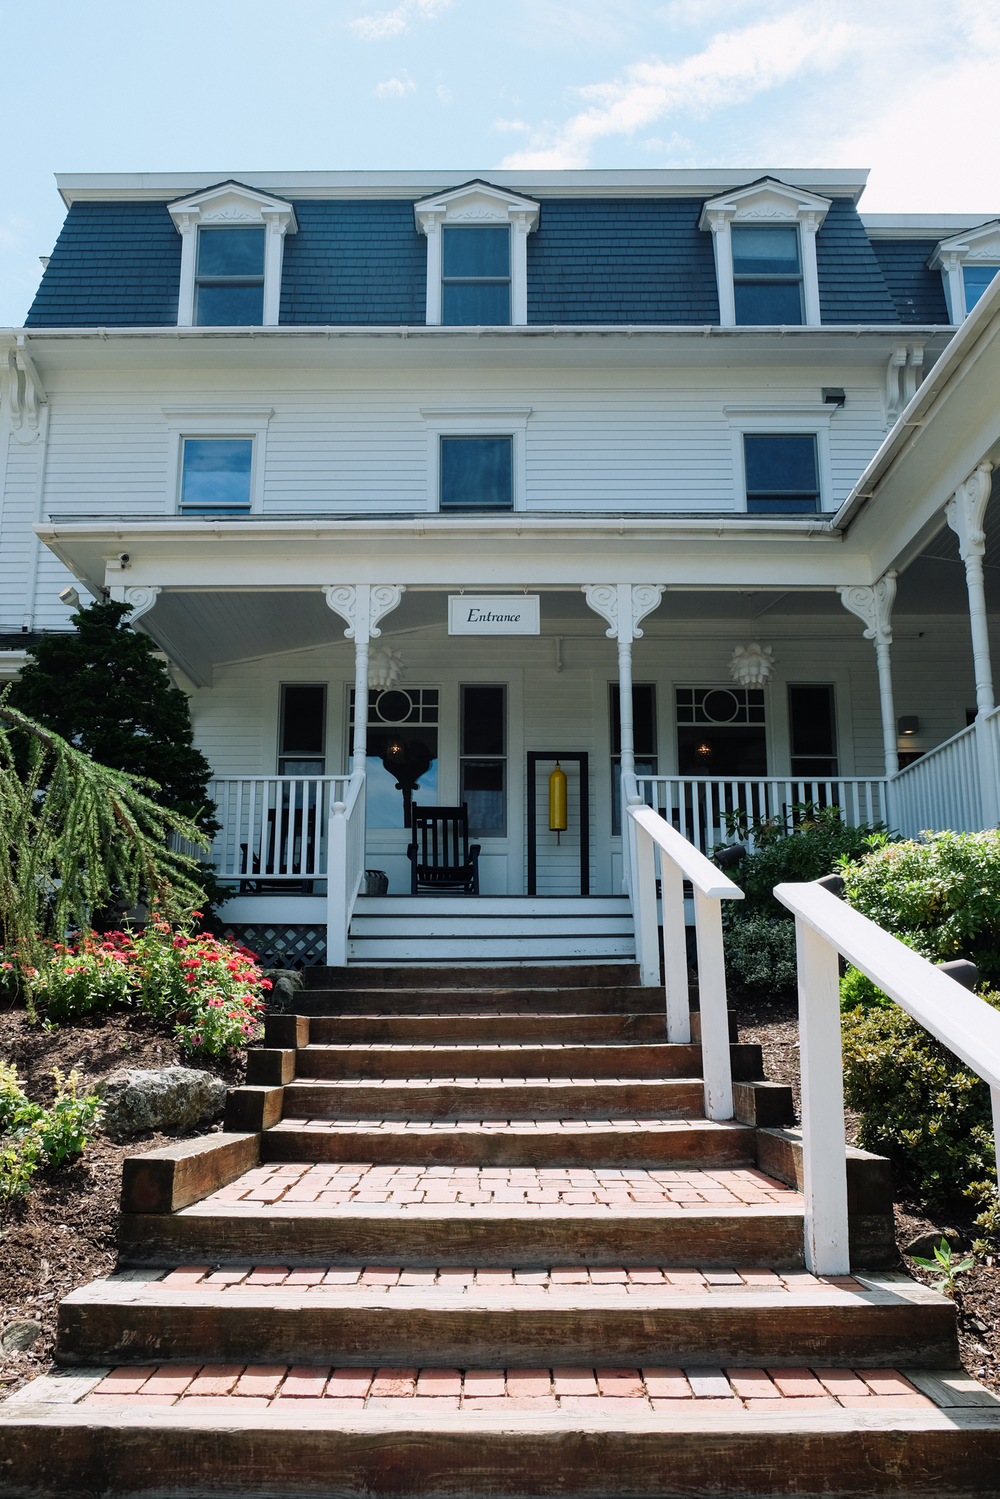 Home Sweet Hotel: Camden Harbour Inn | truelane